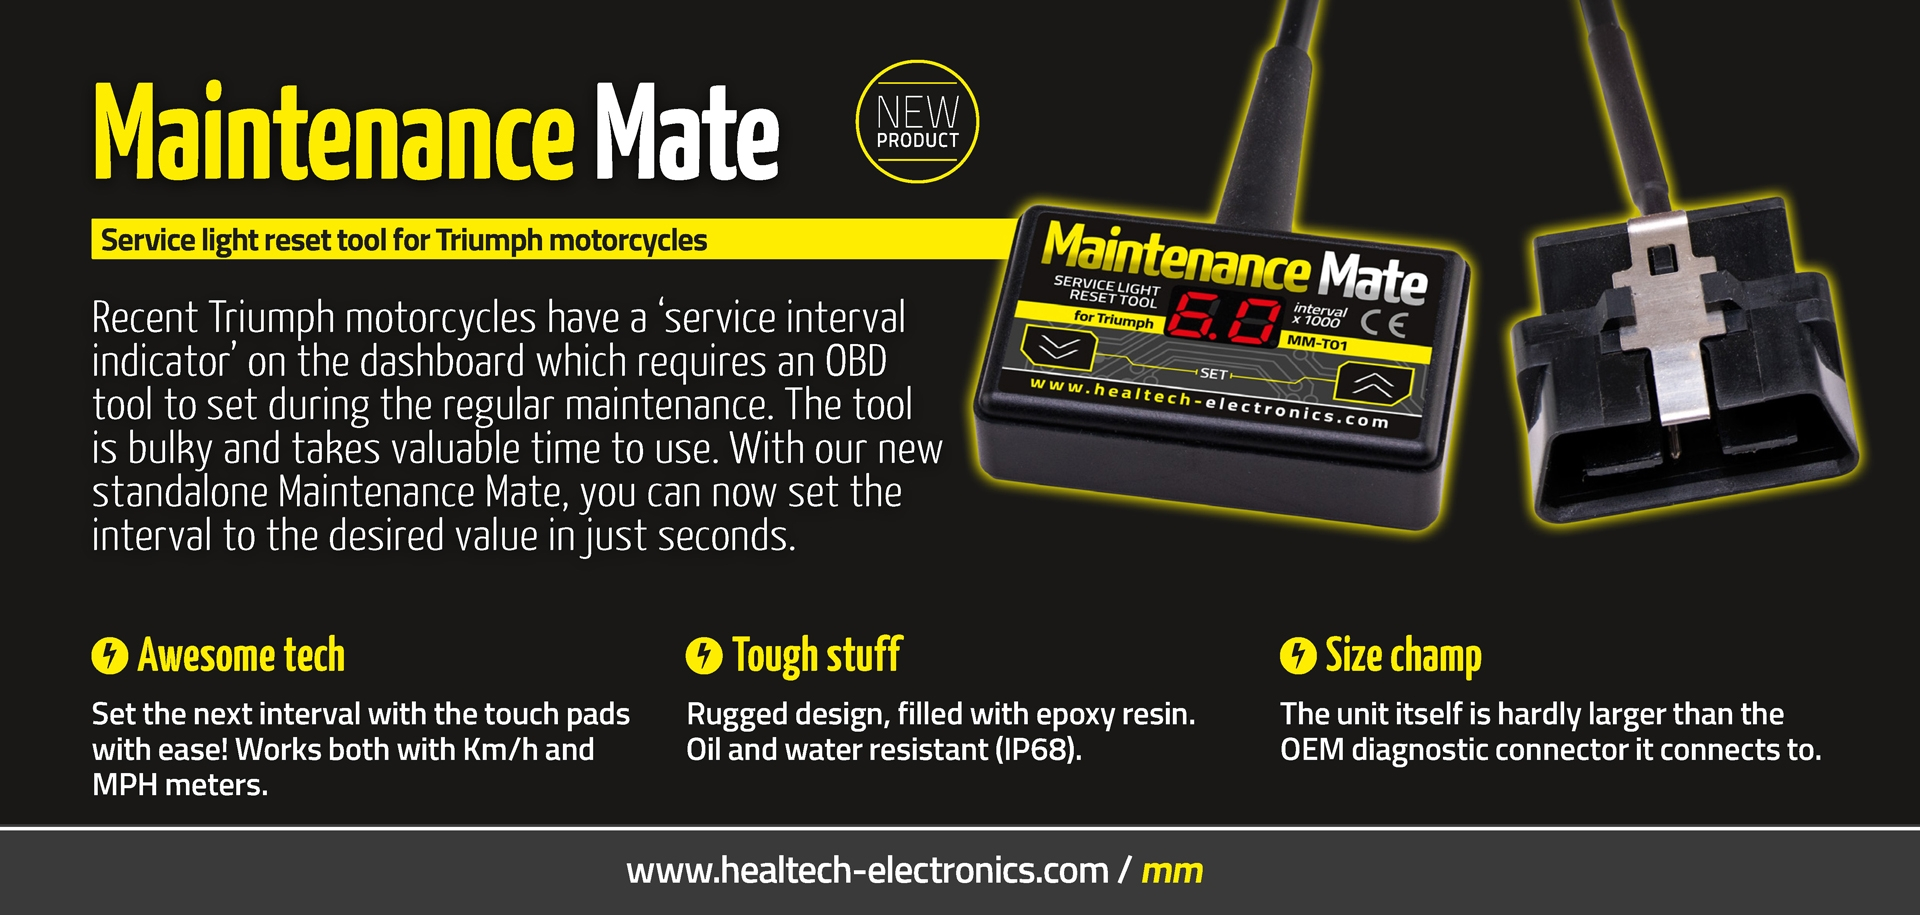 Maintenance Mate flyer